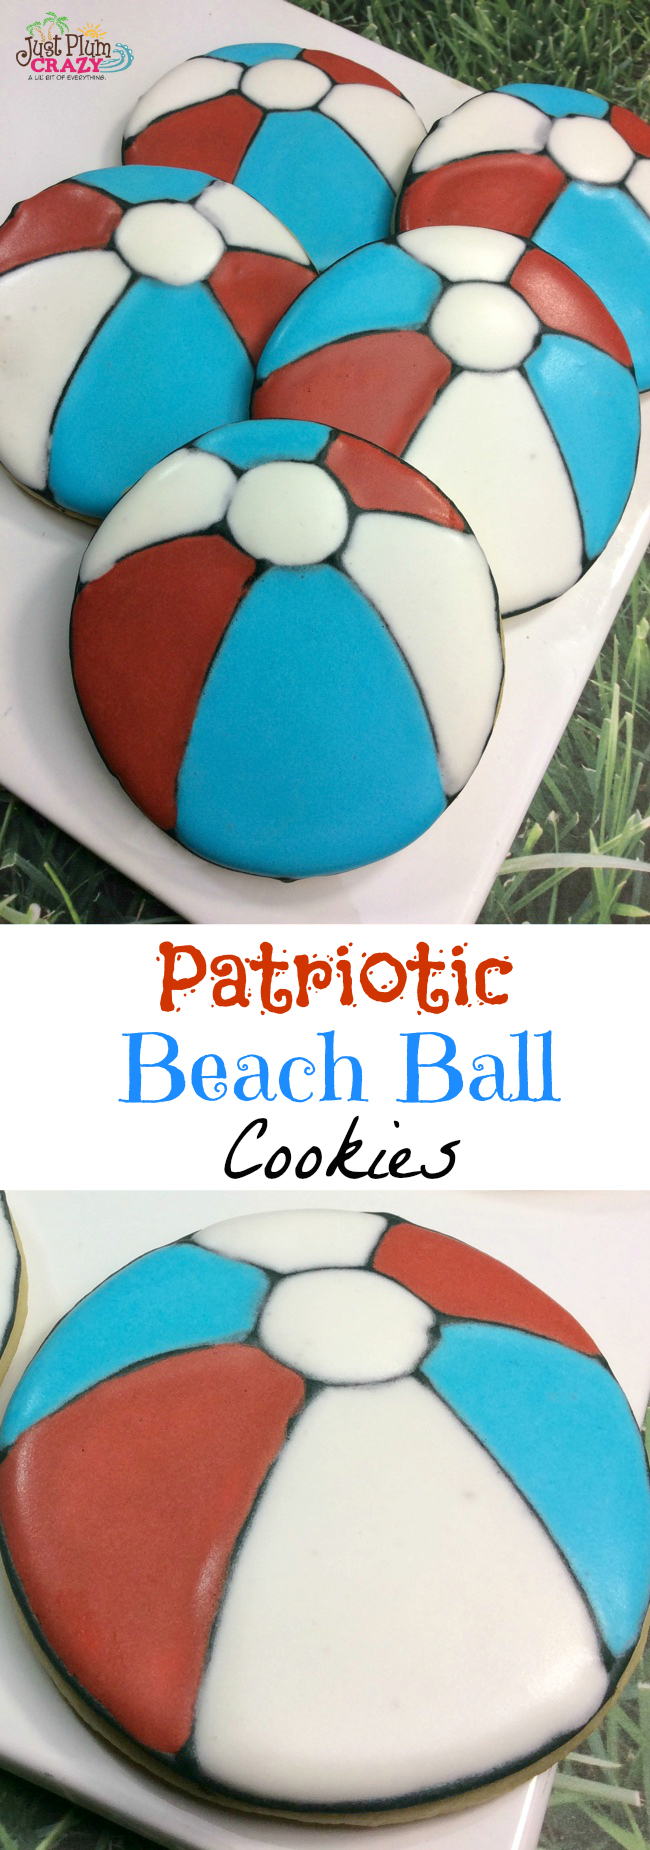 Patriotic beach ball sugar cookies in red, white and blue.